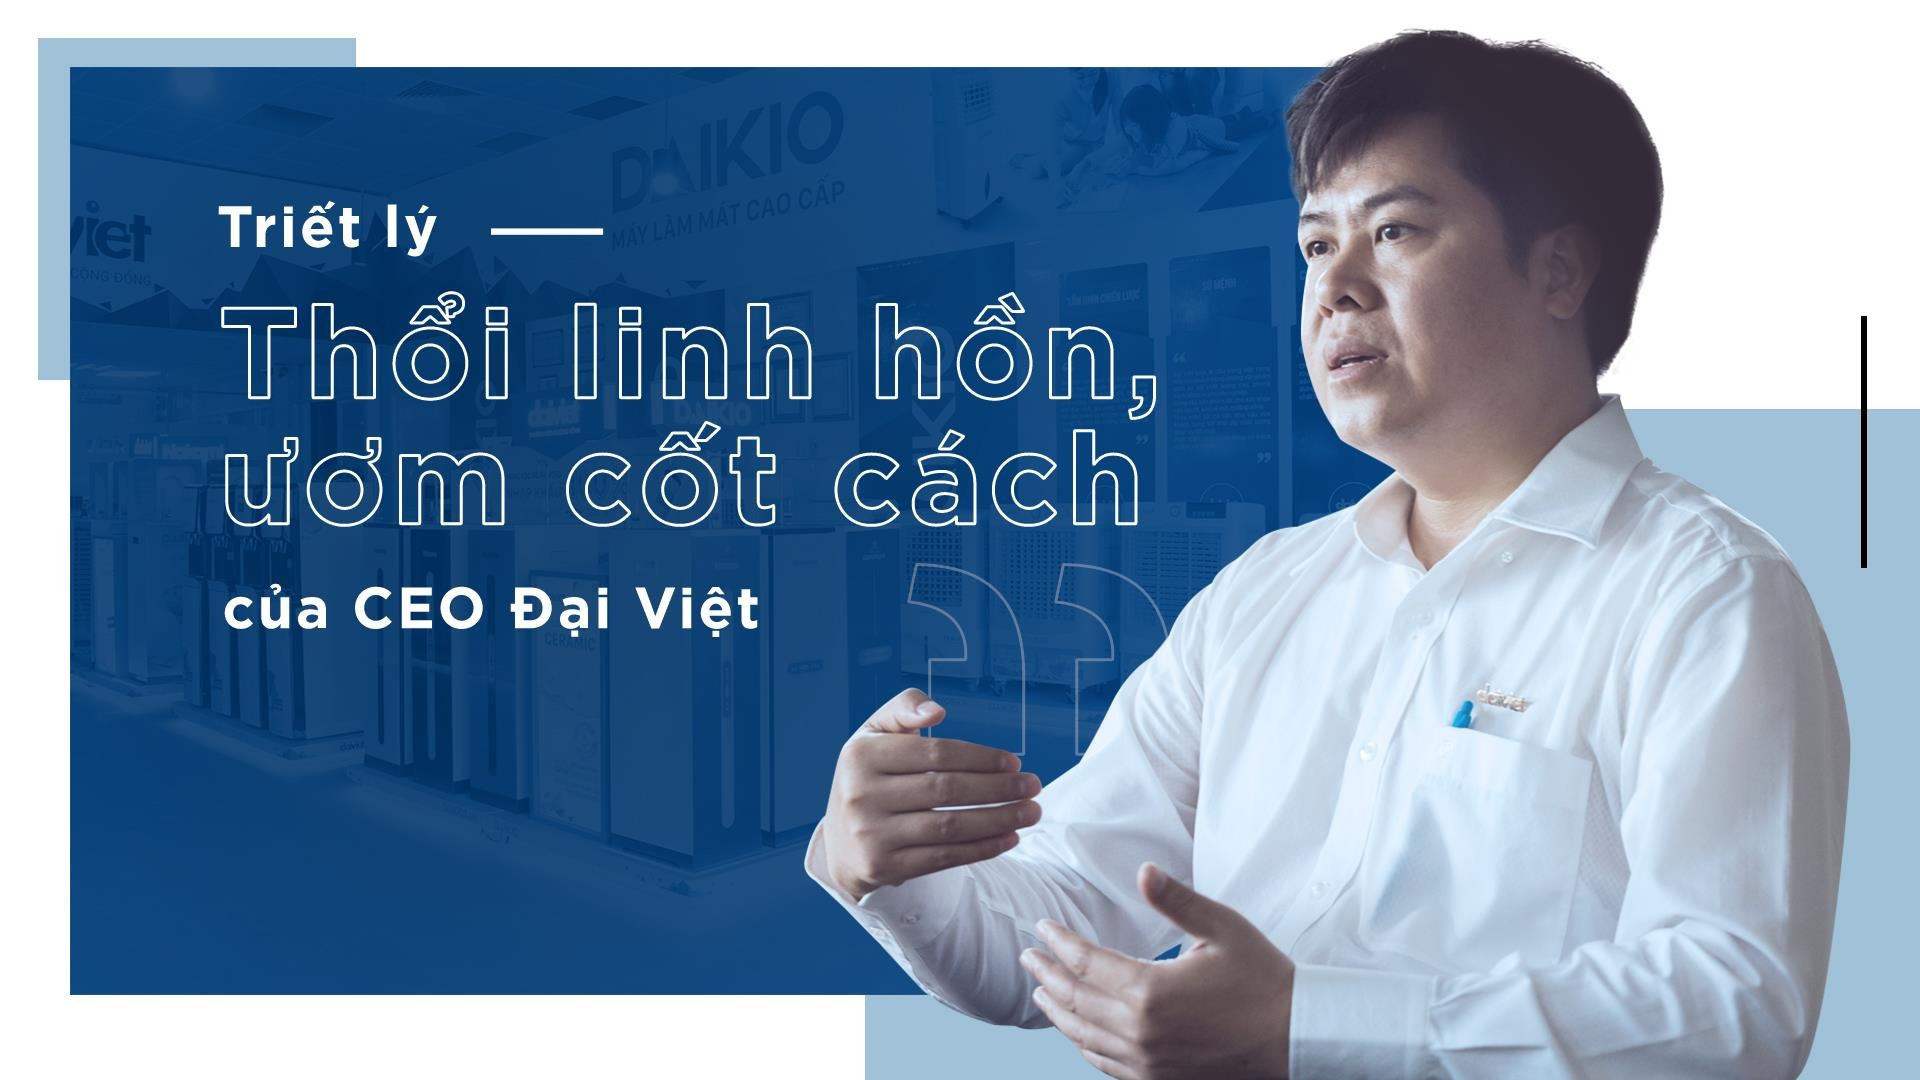 Triet ly 'thoi linh hon, uom cot cach' cua CEO Dai Viet hinh anh 2